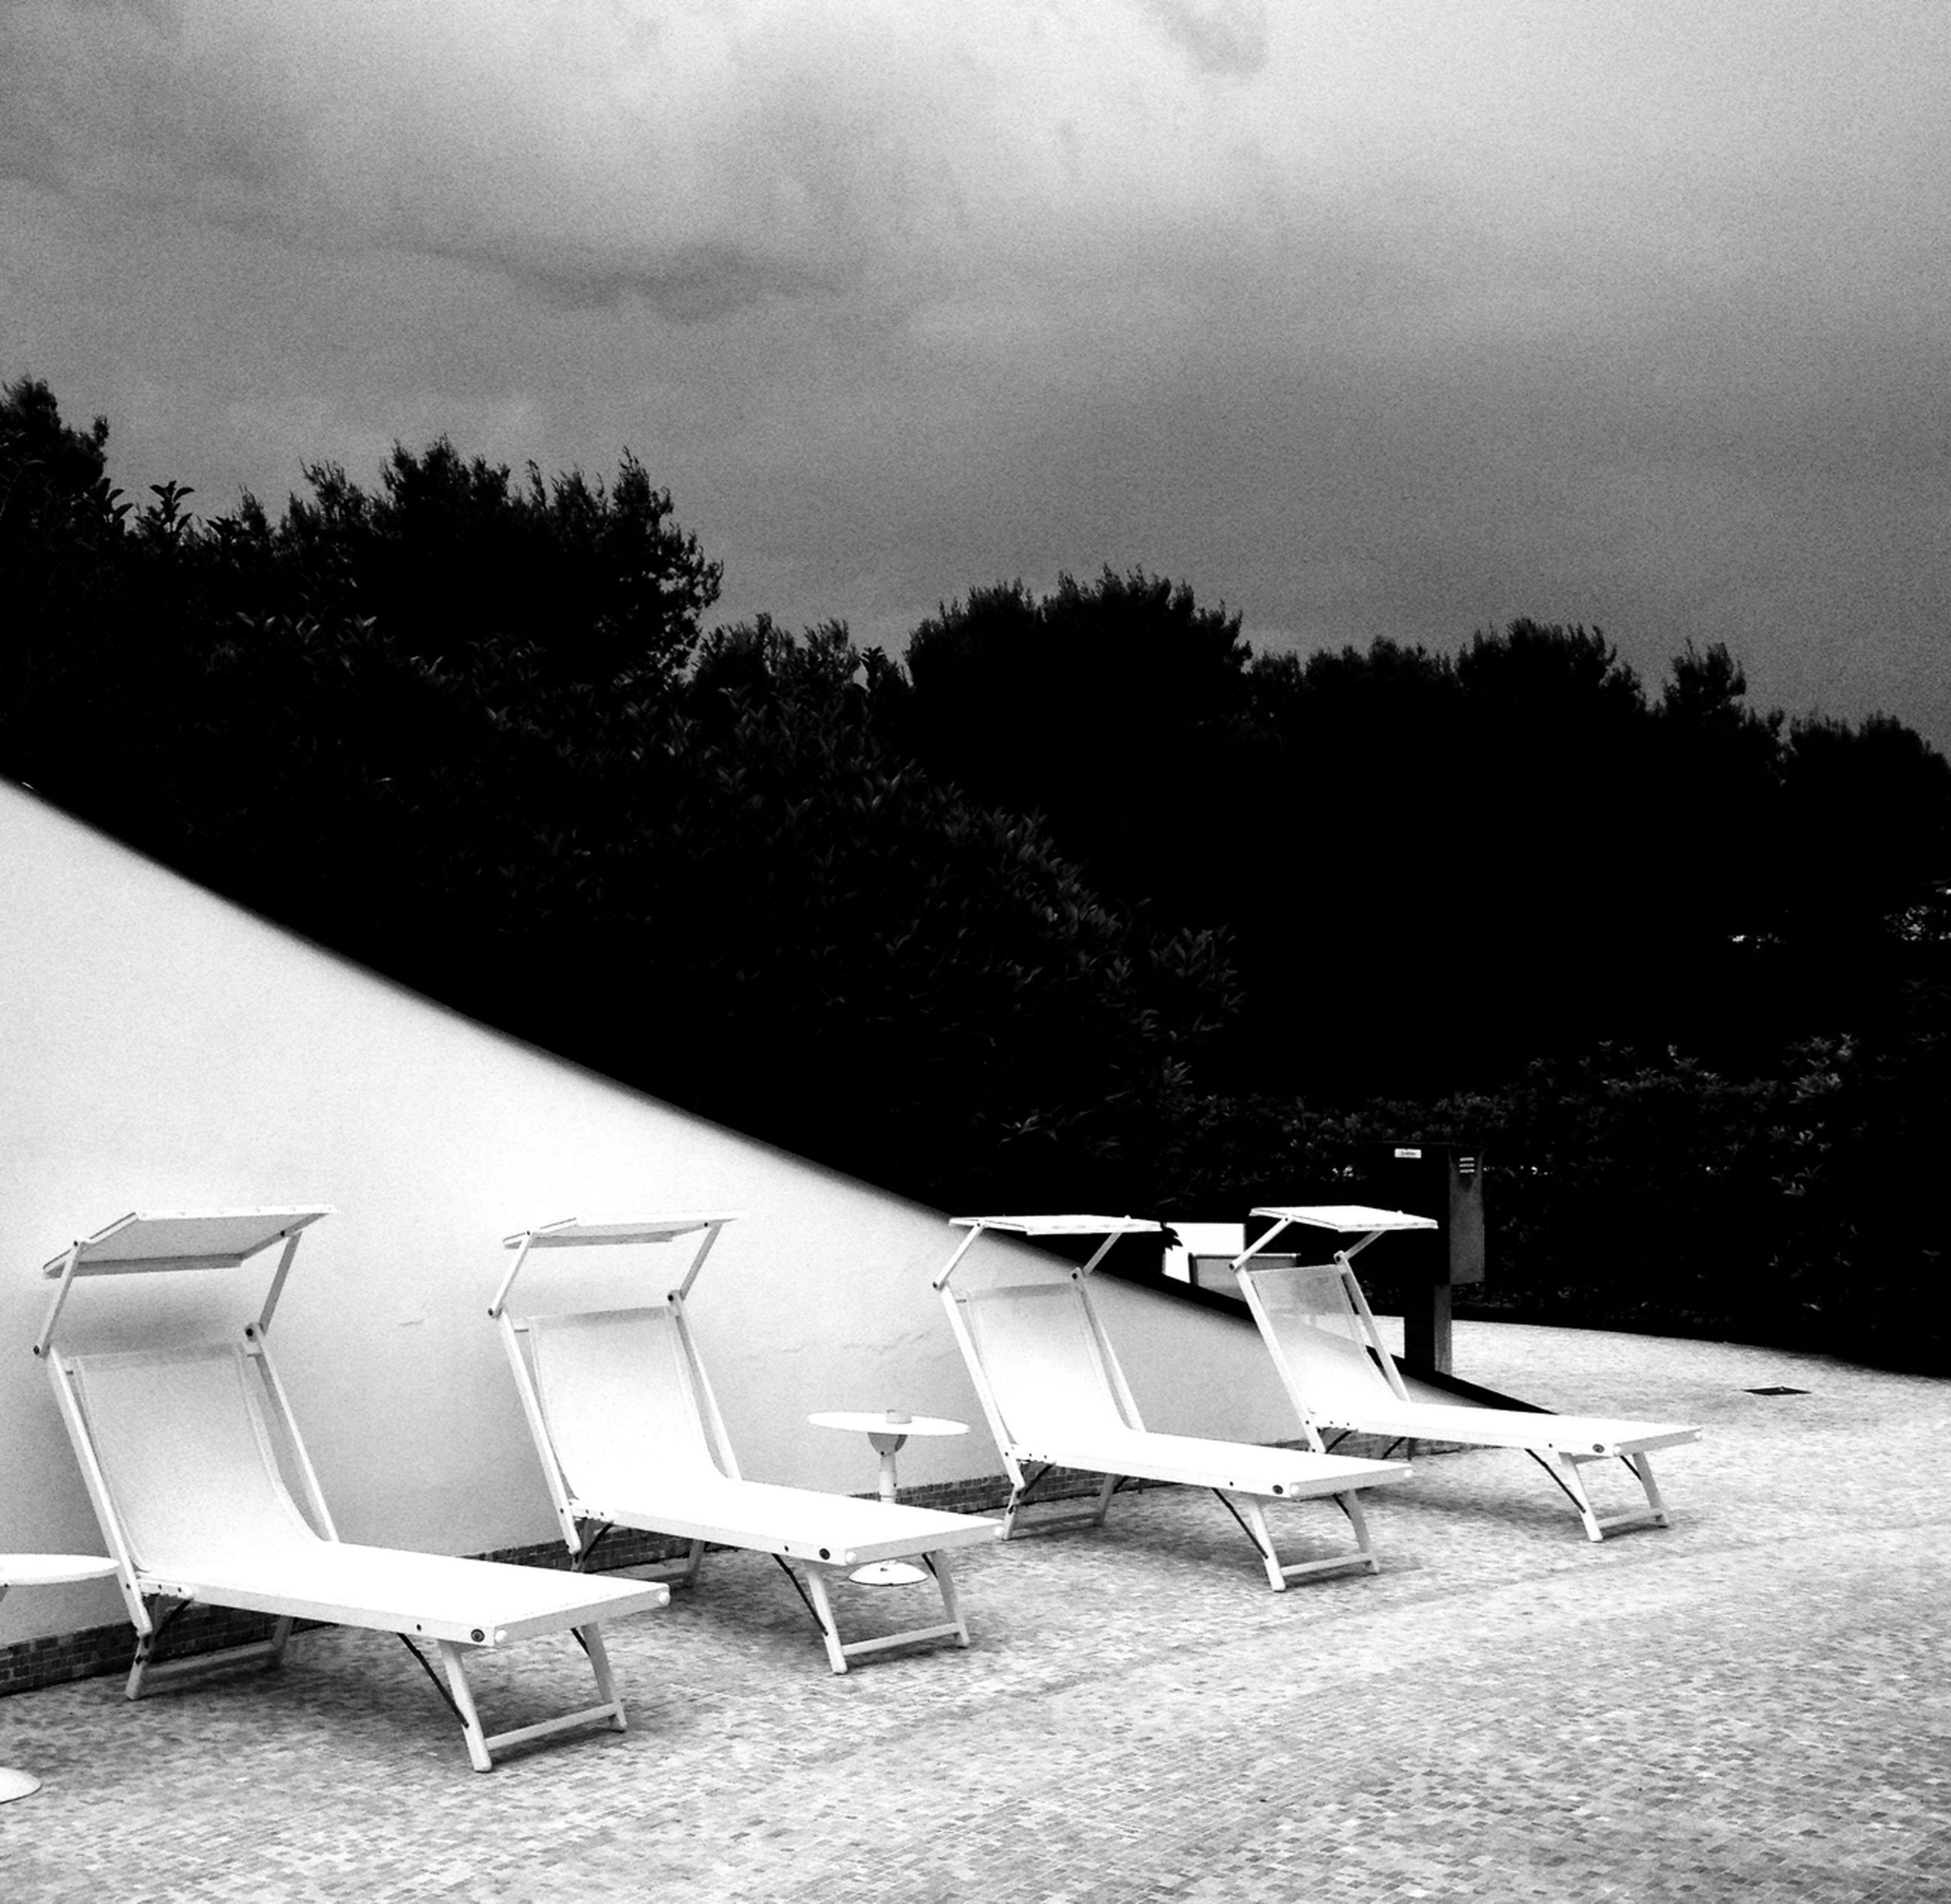 empty, chair, tree, sky, absence, seat, tranquility, tranquil scene, bench, nature, in a row, outdoors, day, no people, table, beach, cloud - sky, relaxation, scenics, shadow